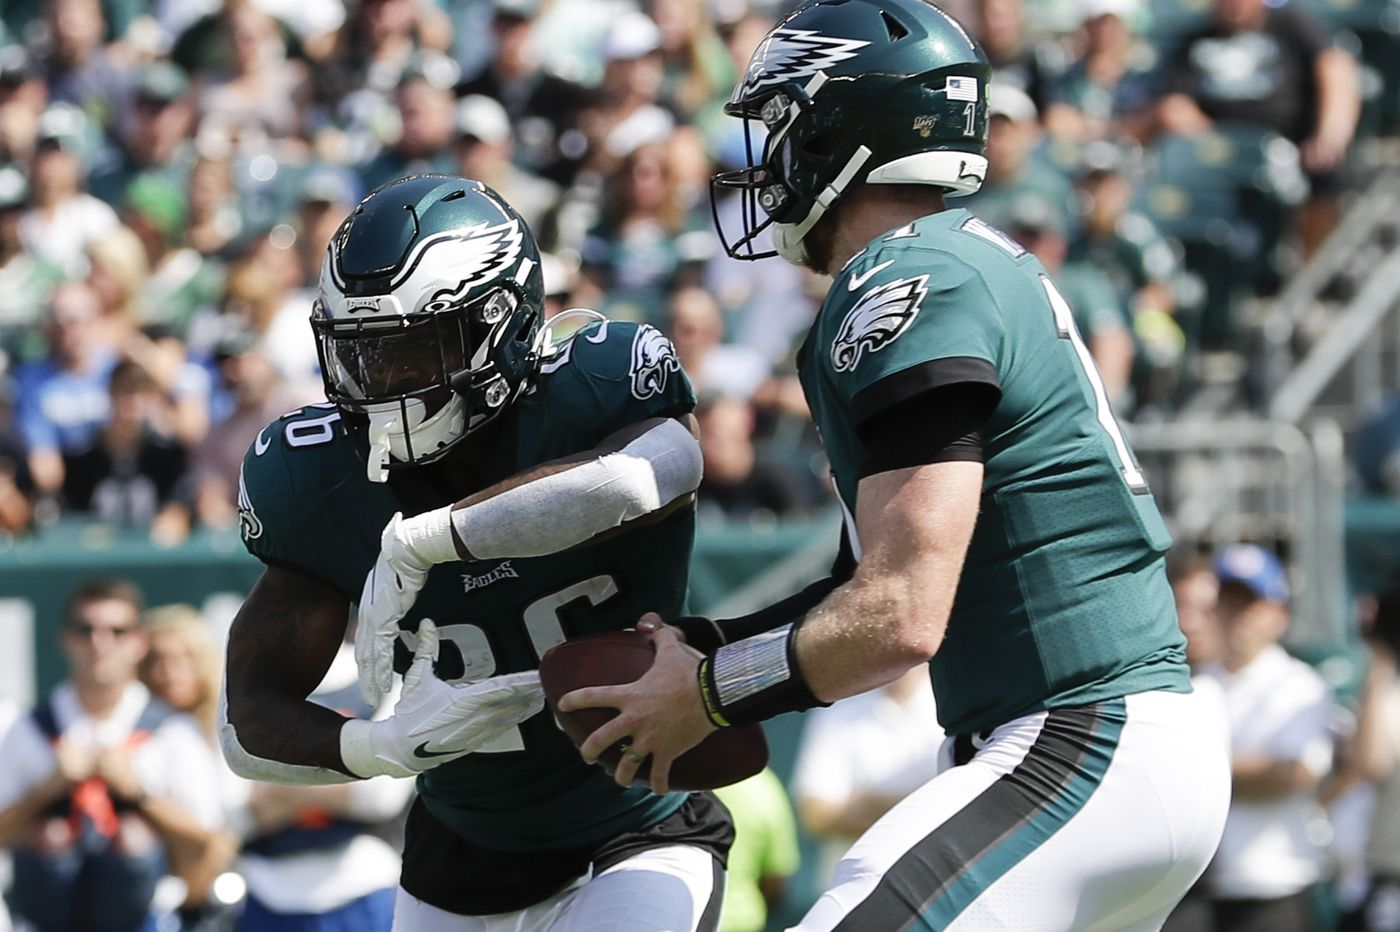 The Eagles are serious about play-action, as Carson Wentz's stats show